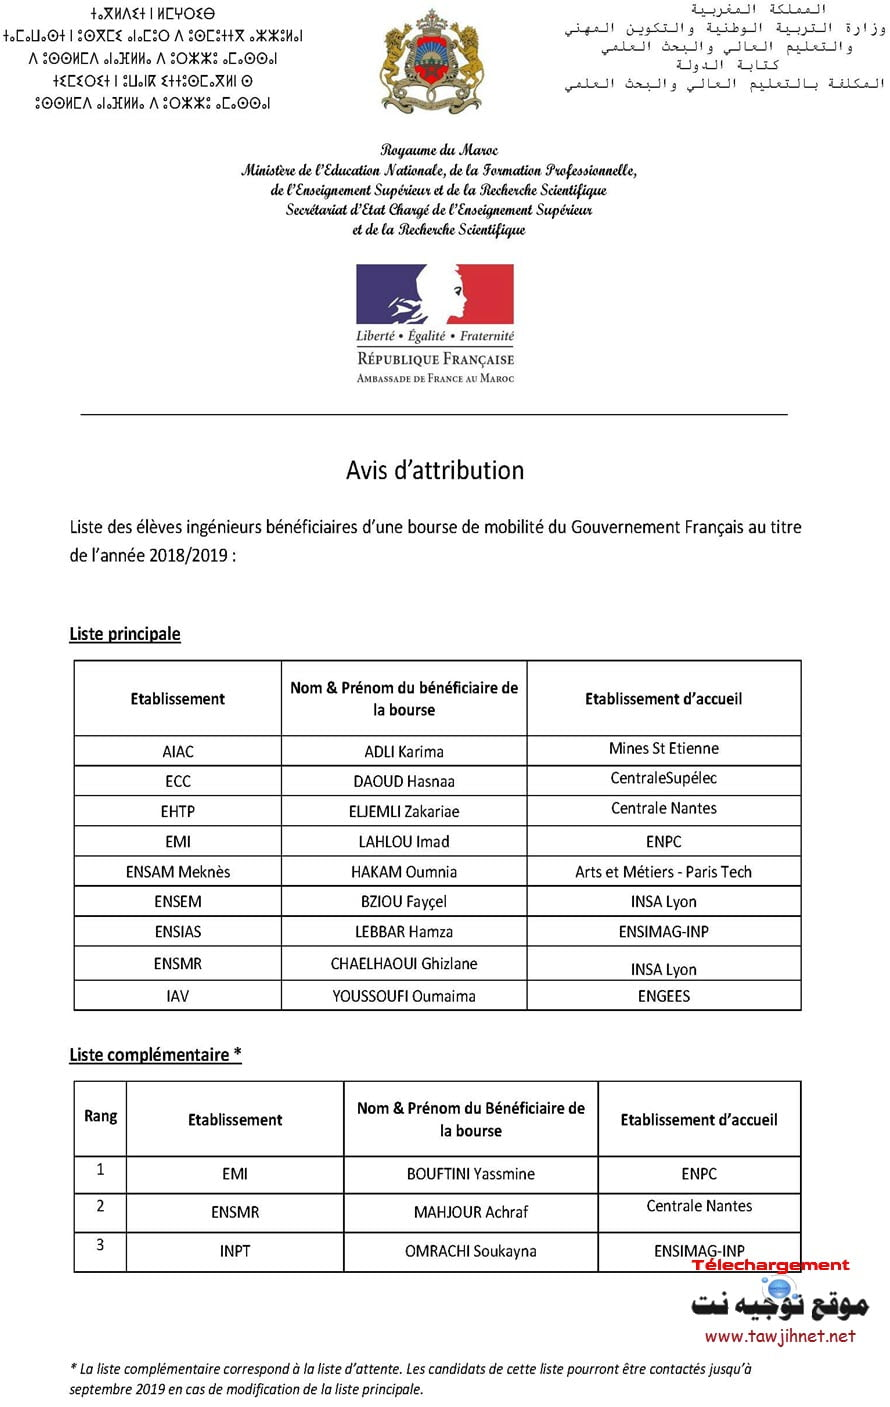 France-attributionbourse-mobilit%C3%A9-2018-2019